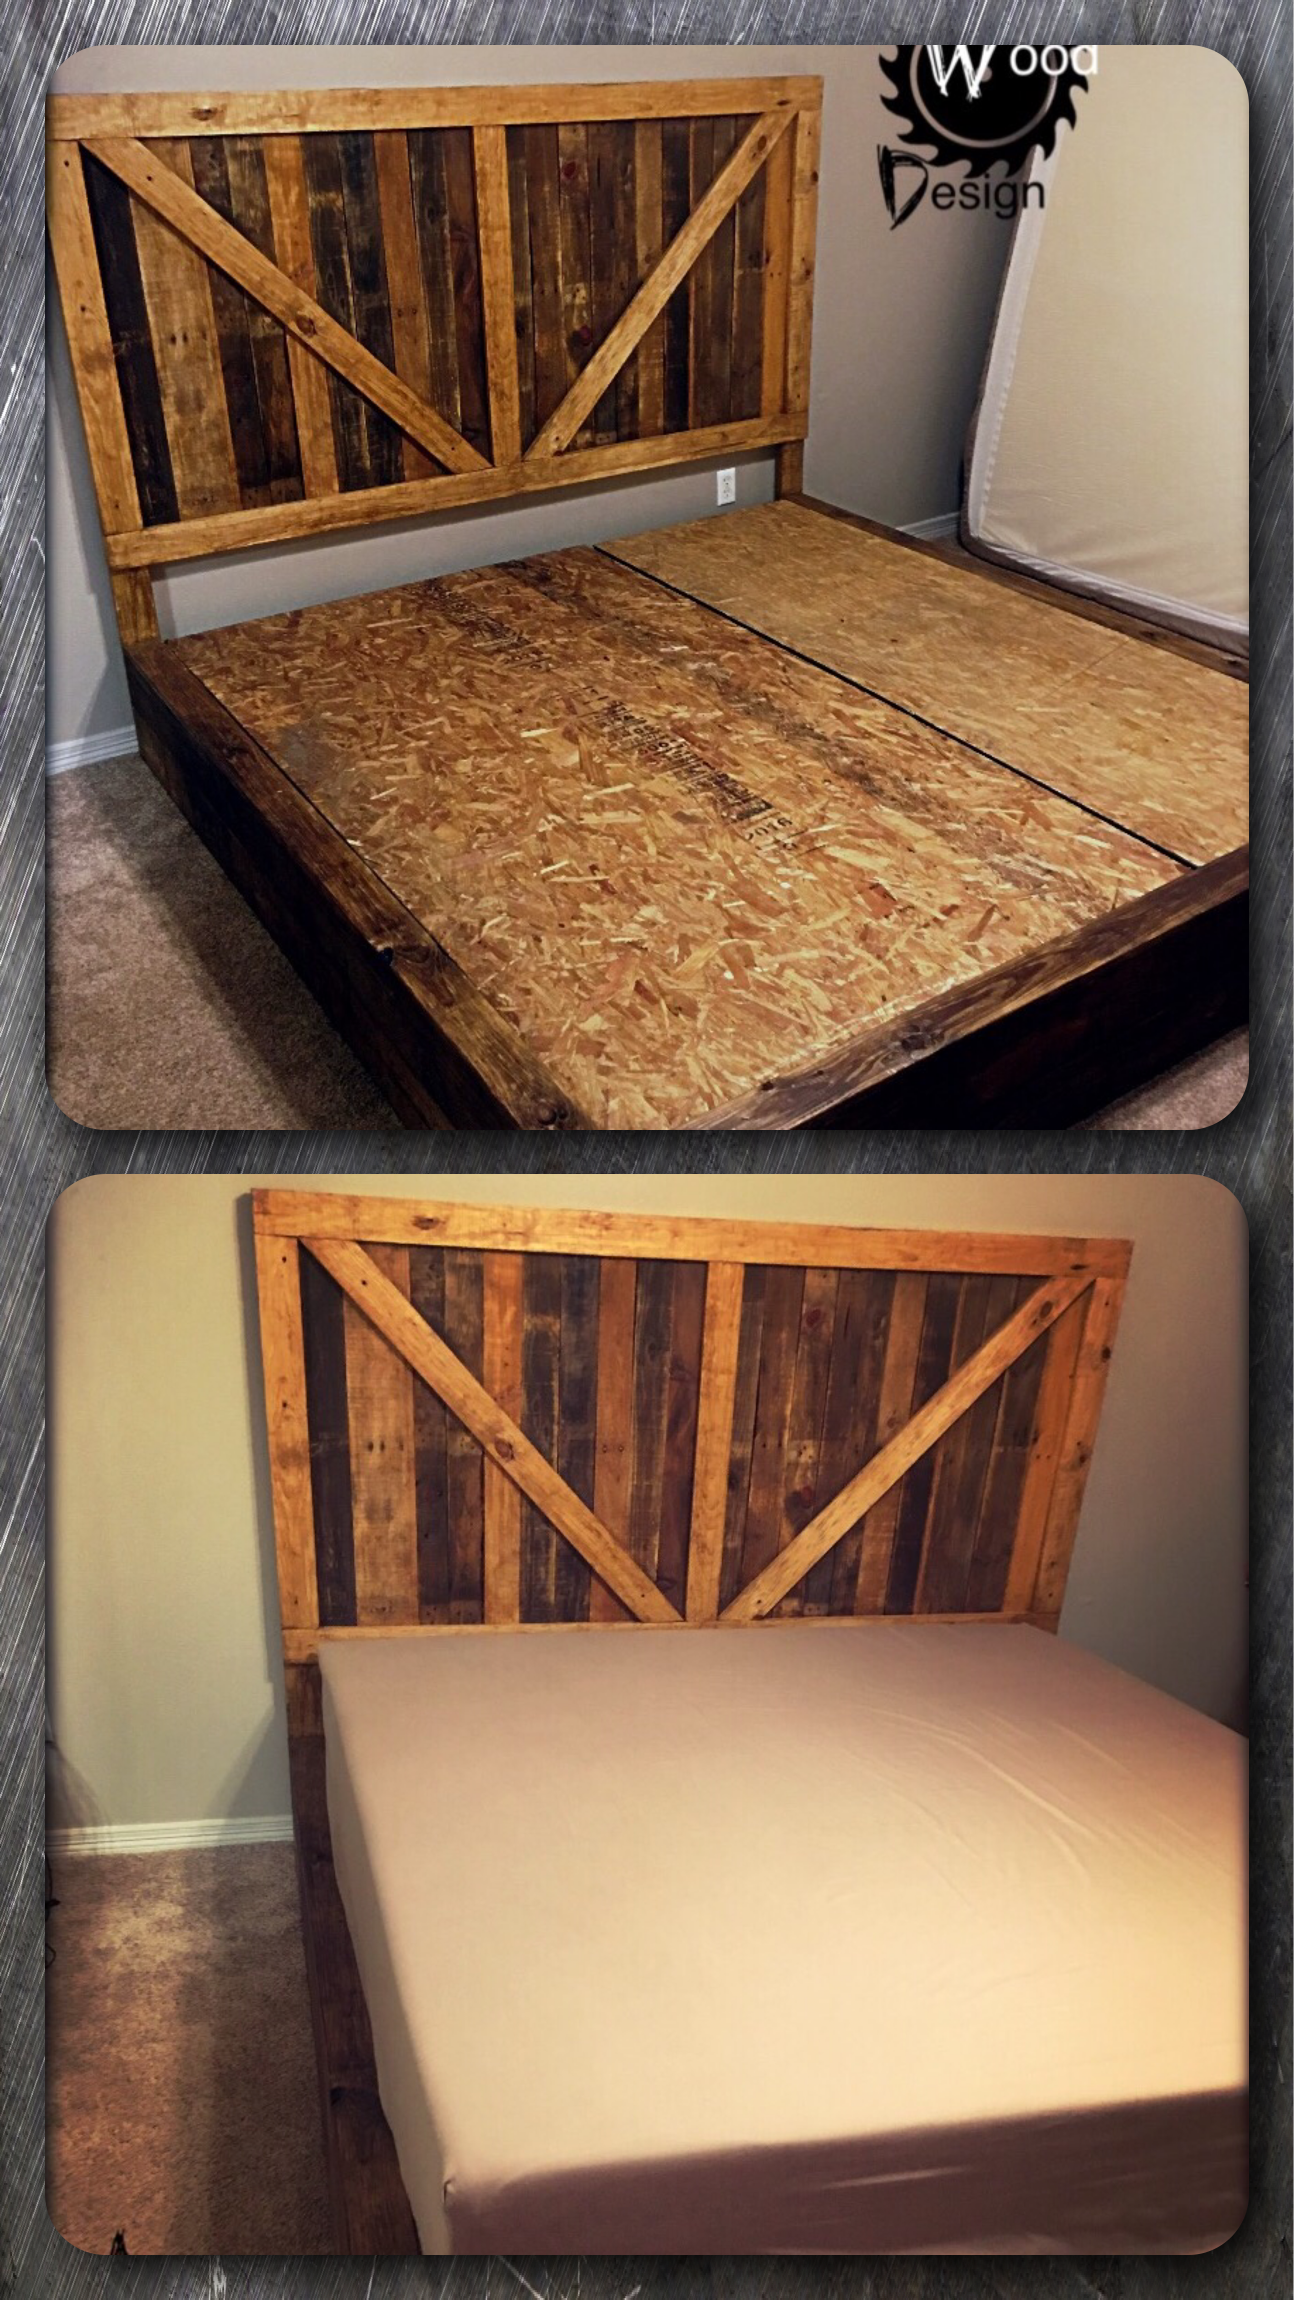 Pallet Platform Bed built by Angry Wood Design. Holzdesign